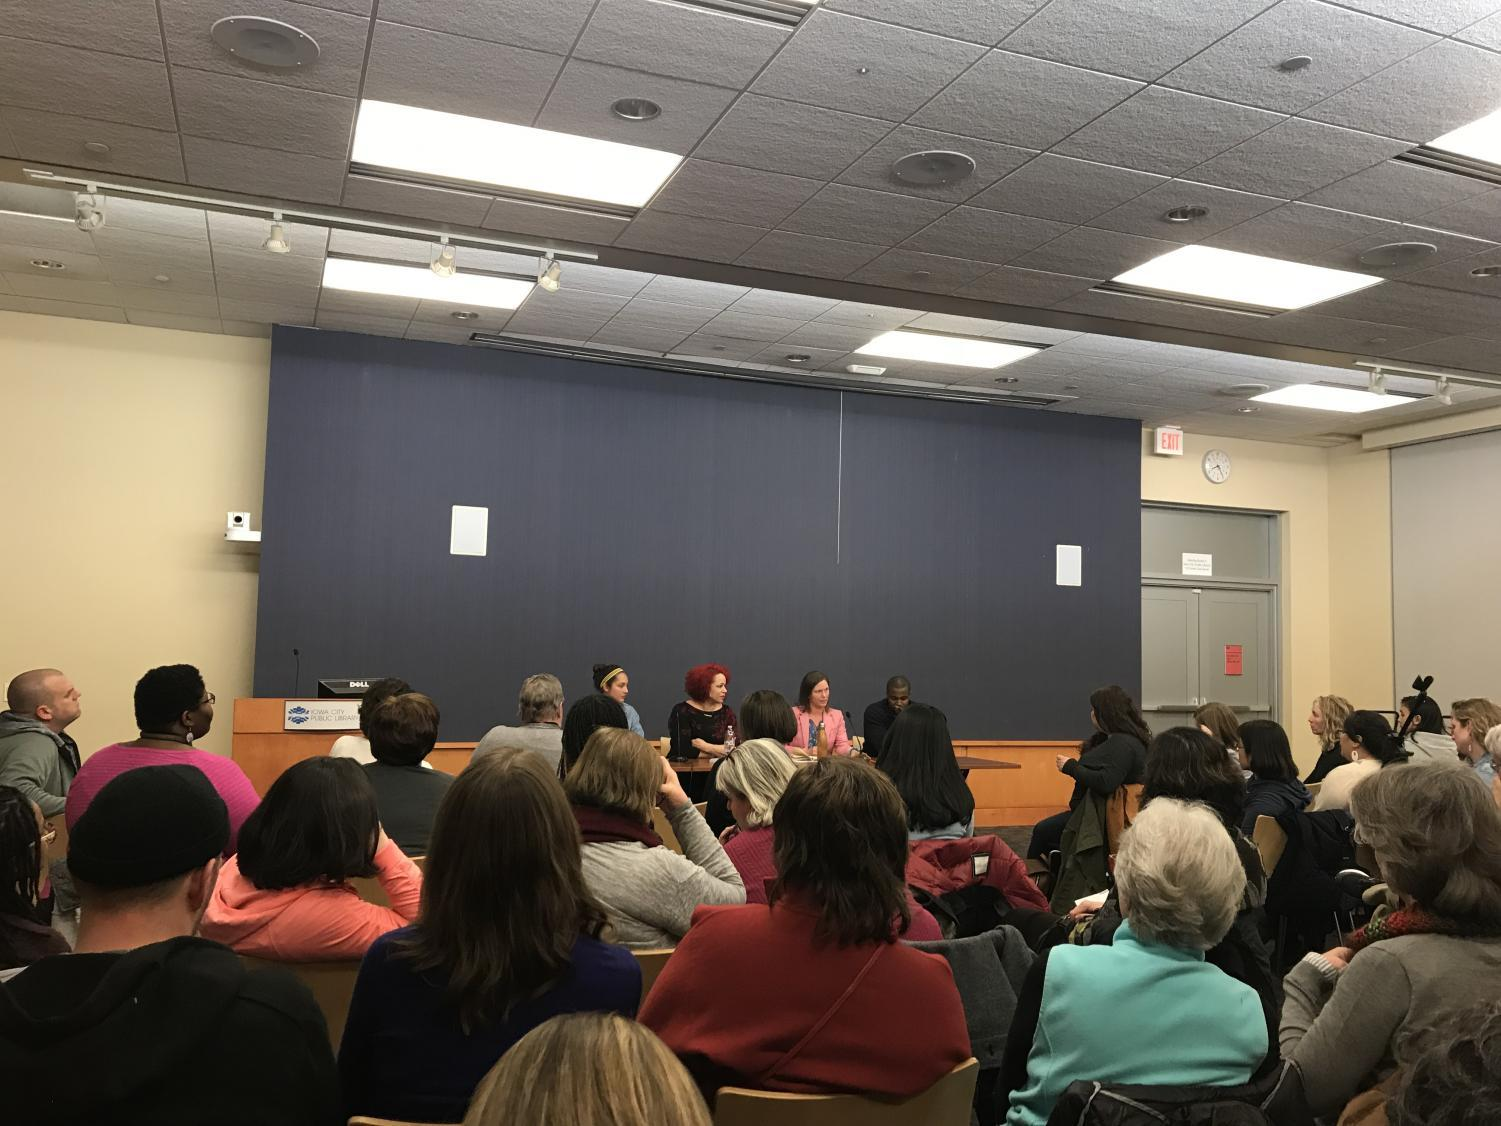 University of Iowa College of Education Assistant Professor Leslie Locke speaks on the efforts to attract diverse students to pursue a degree in education on Mon., April 2. Panelists from left to right: Maya Durham, Nikole Hannah-Jones, Leslie Locke and Kinsley Botchway.